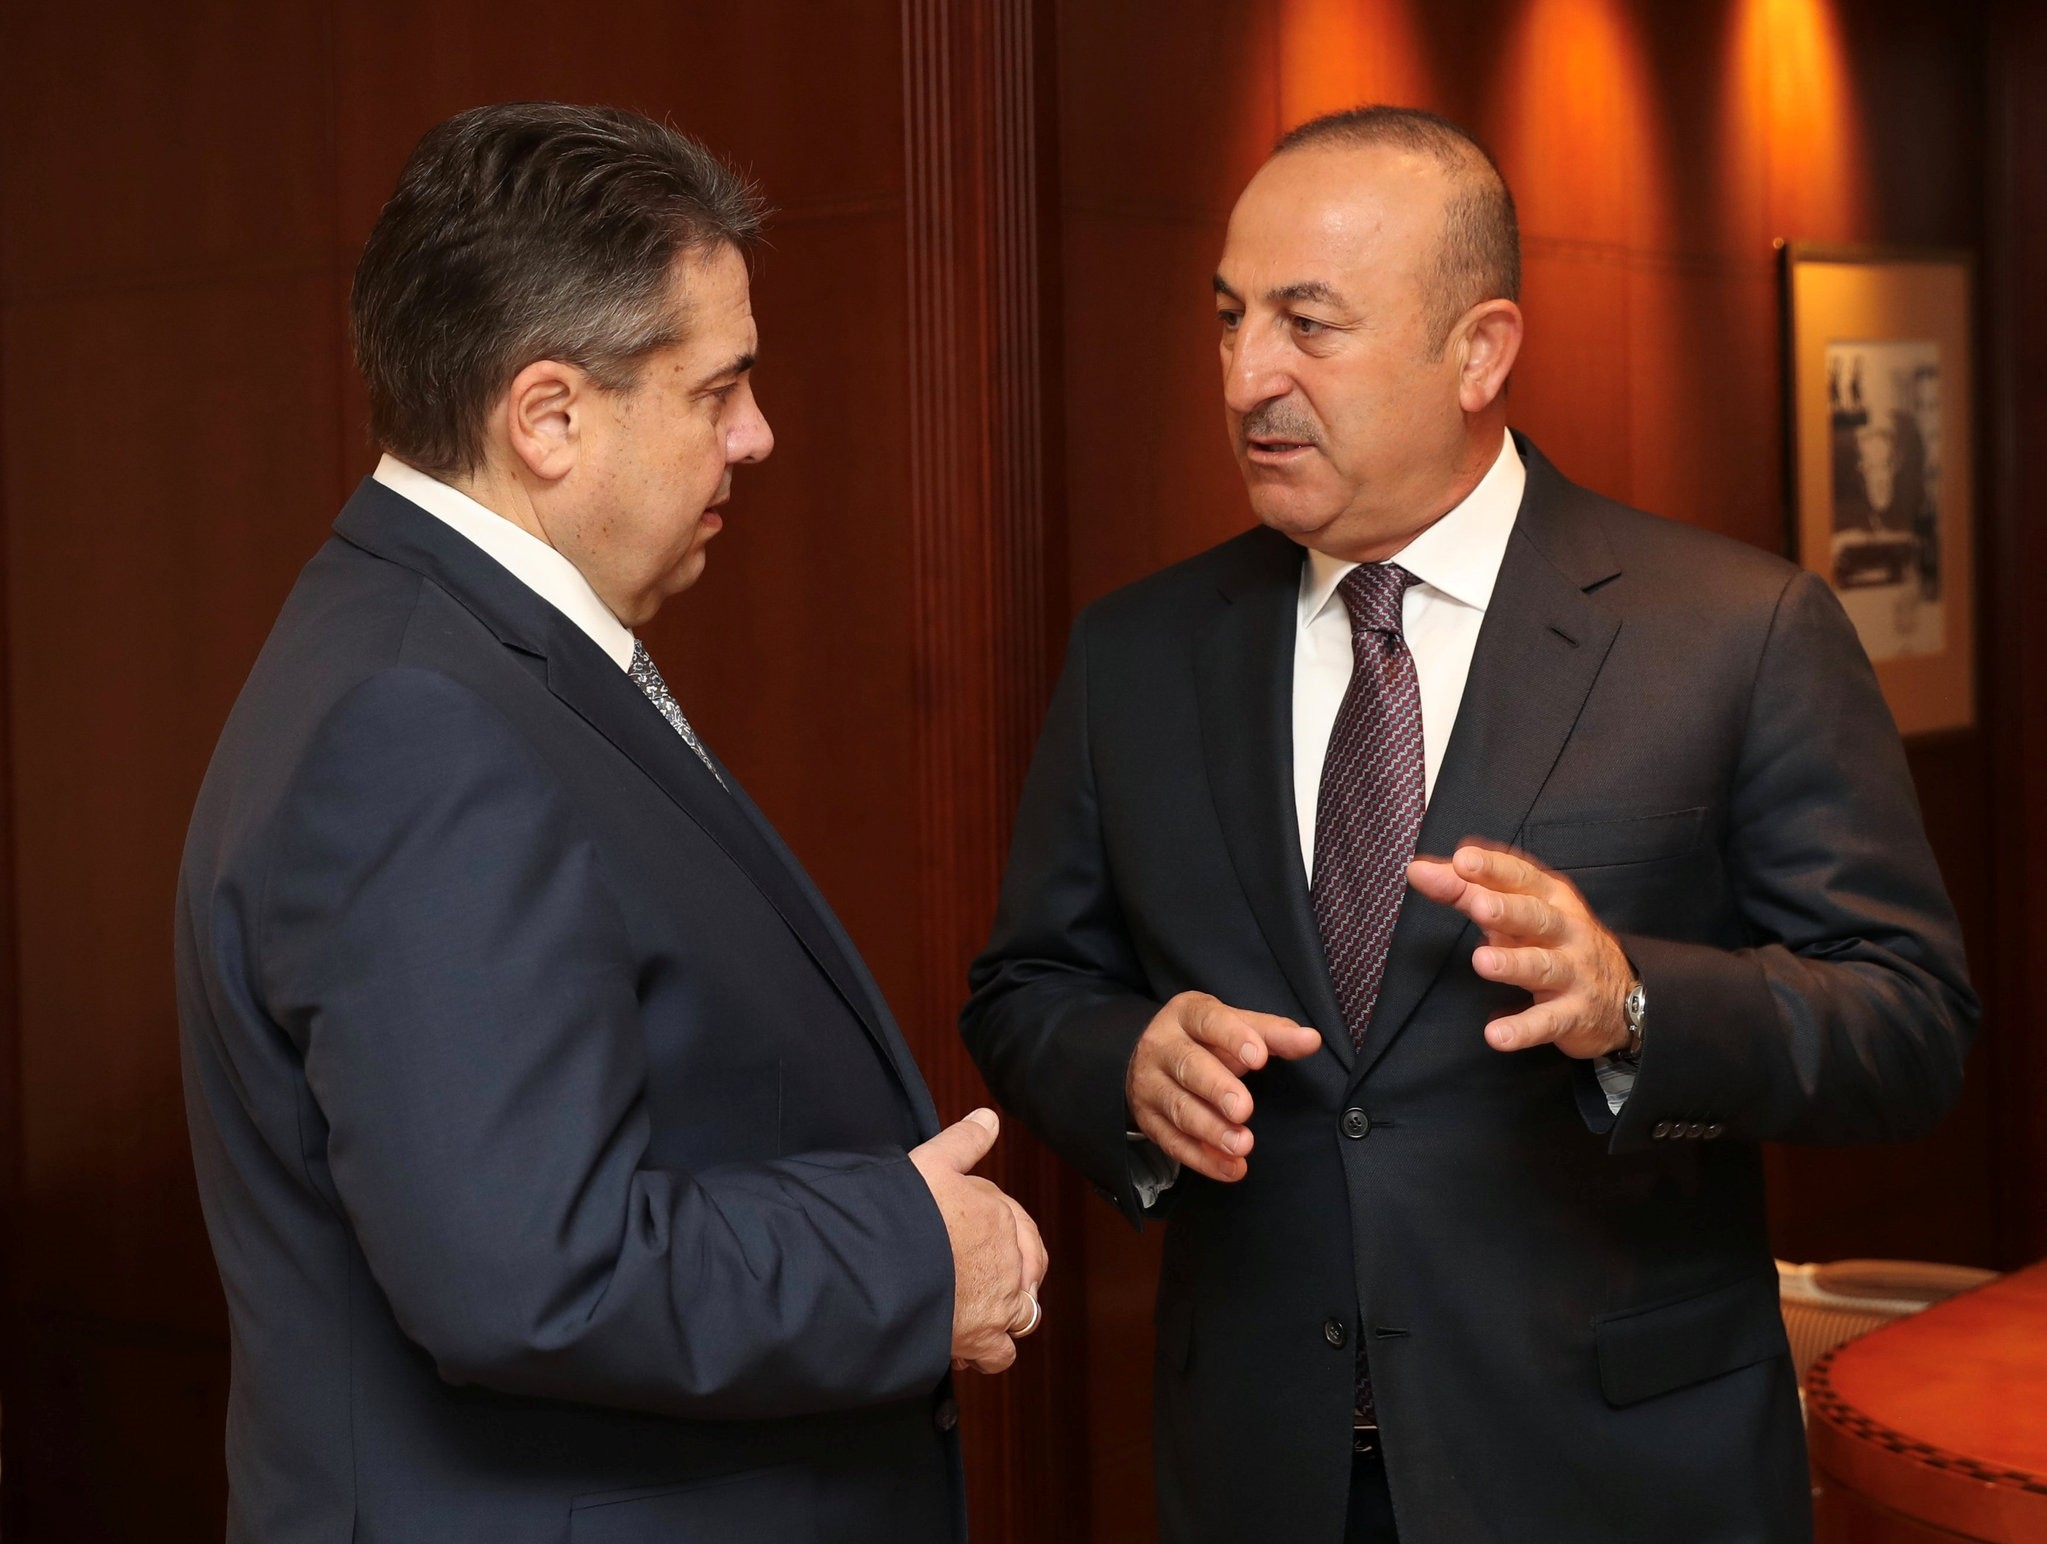 Foreign Minister Mevlu00fct u00c7avuu015fou011flu (Right) meets his German counterpart Sigmar Gabriel in Berlin, Germany, Wednesday.